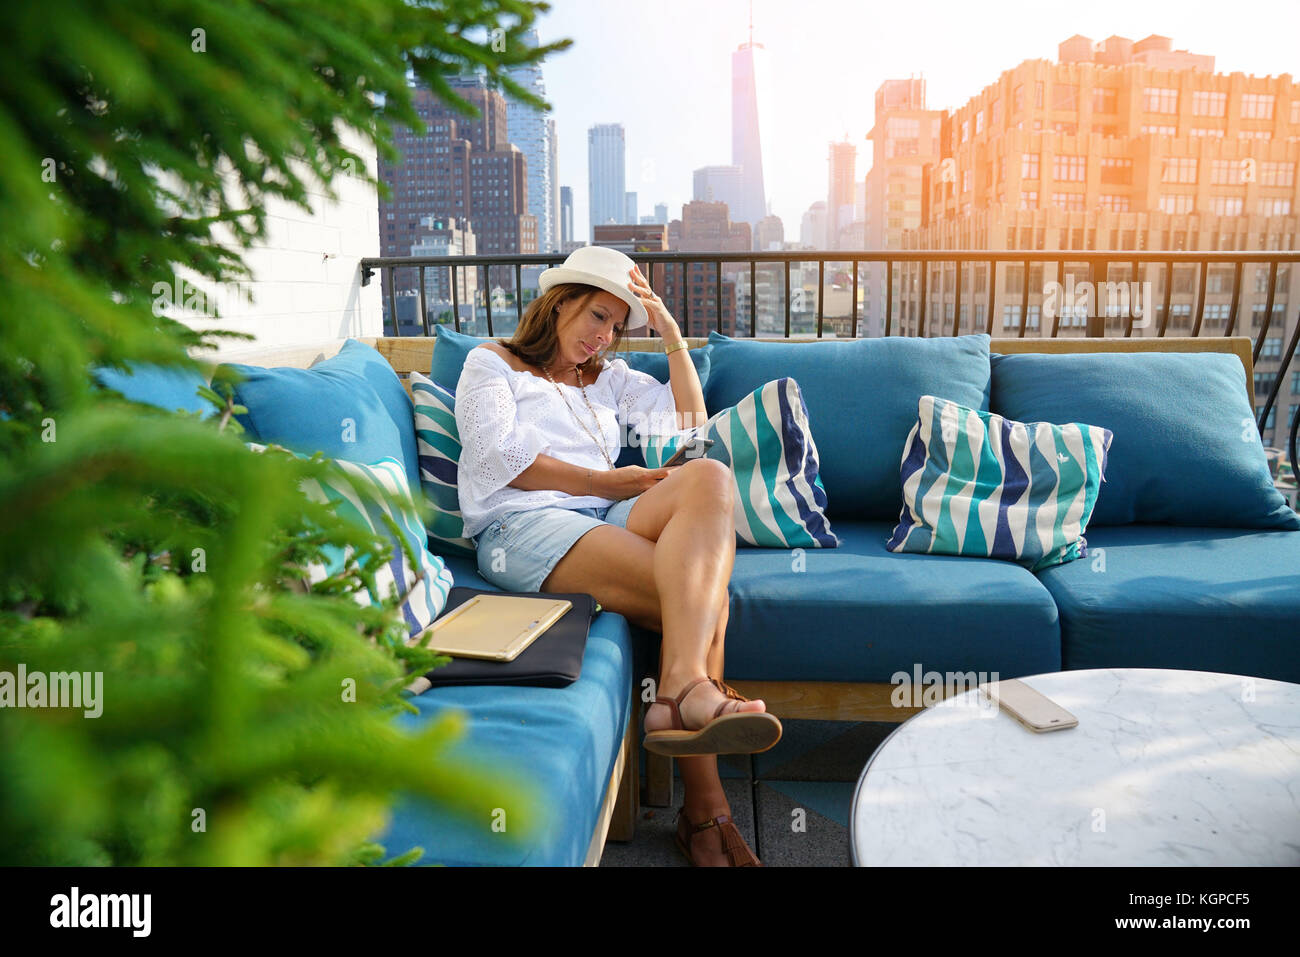 Woman relaxing in sofa on rooftop, NYC - Stock Image